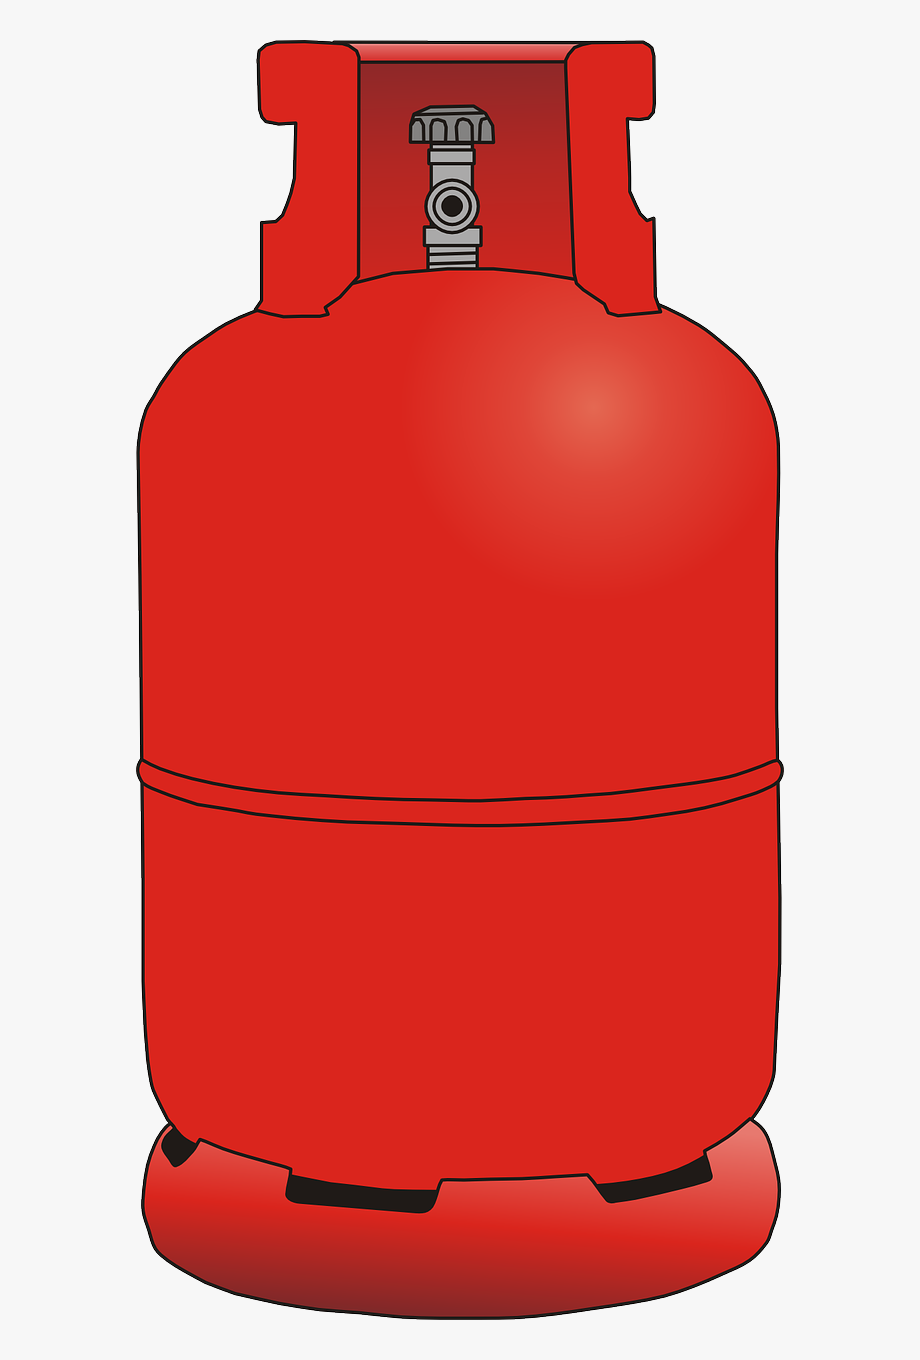 Air tank clipart no bg clipart images gallery for free.